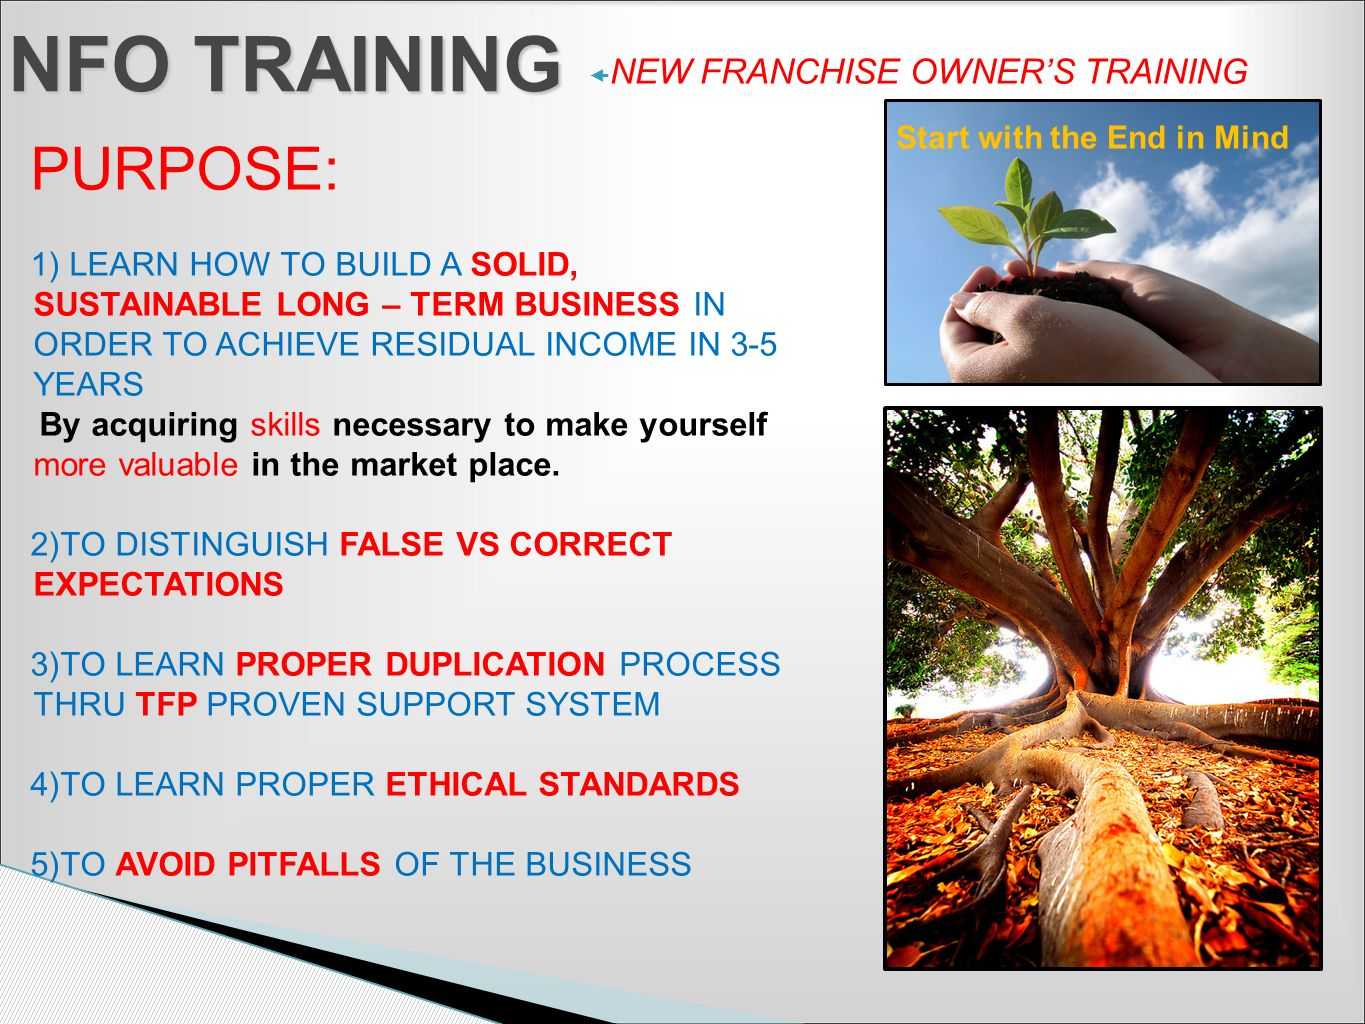 NFO TRAINING PURPOSE: NEW FRANCHISE OWNER'S TRAINING